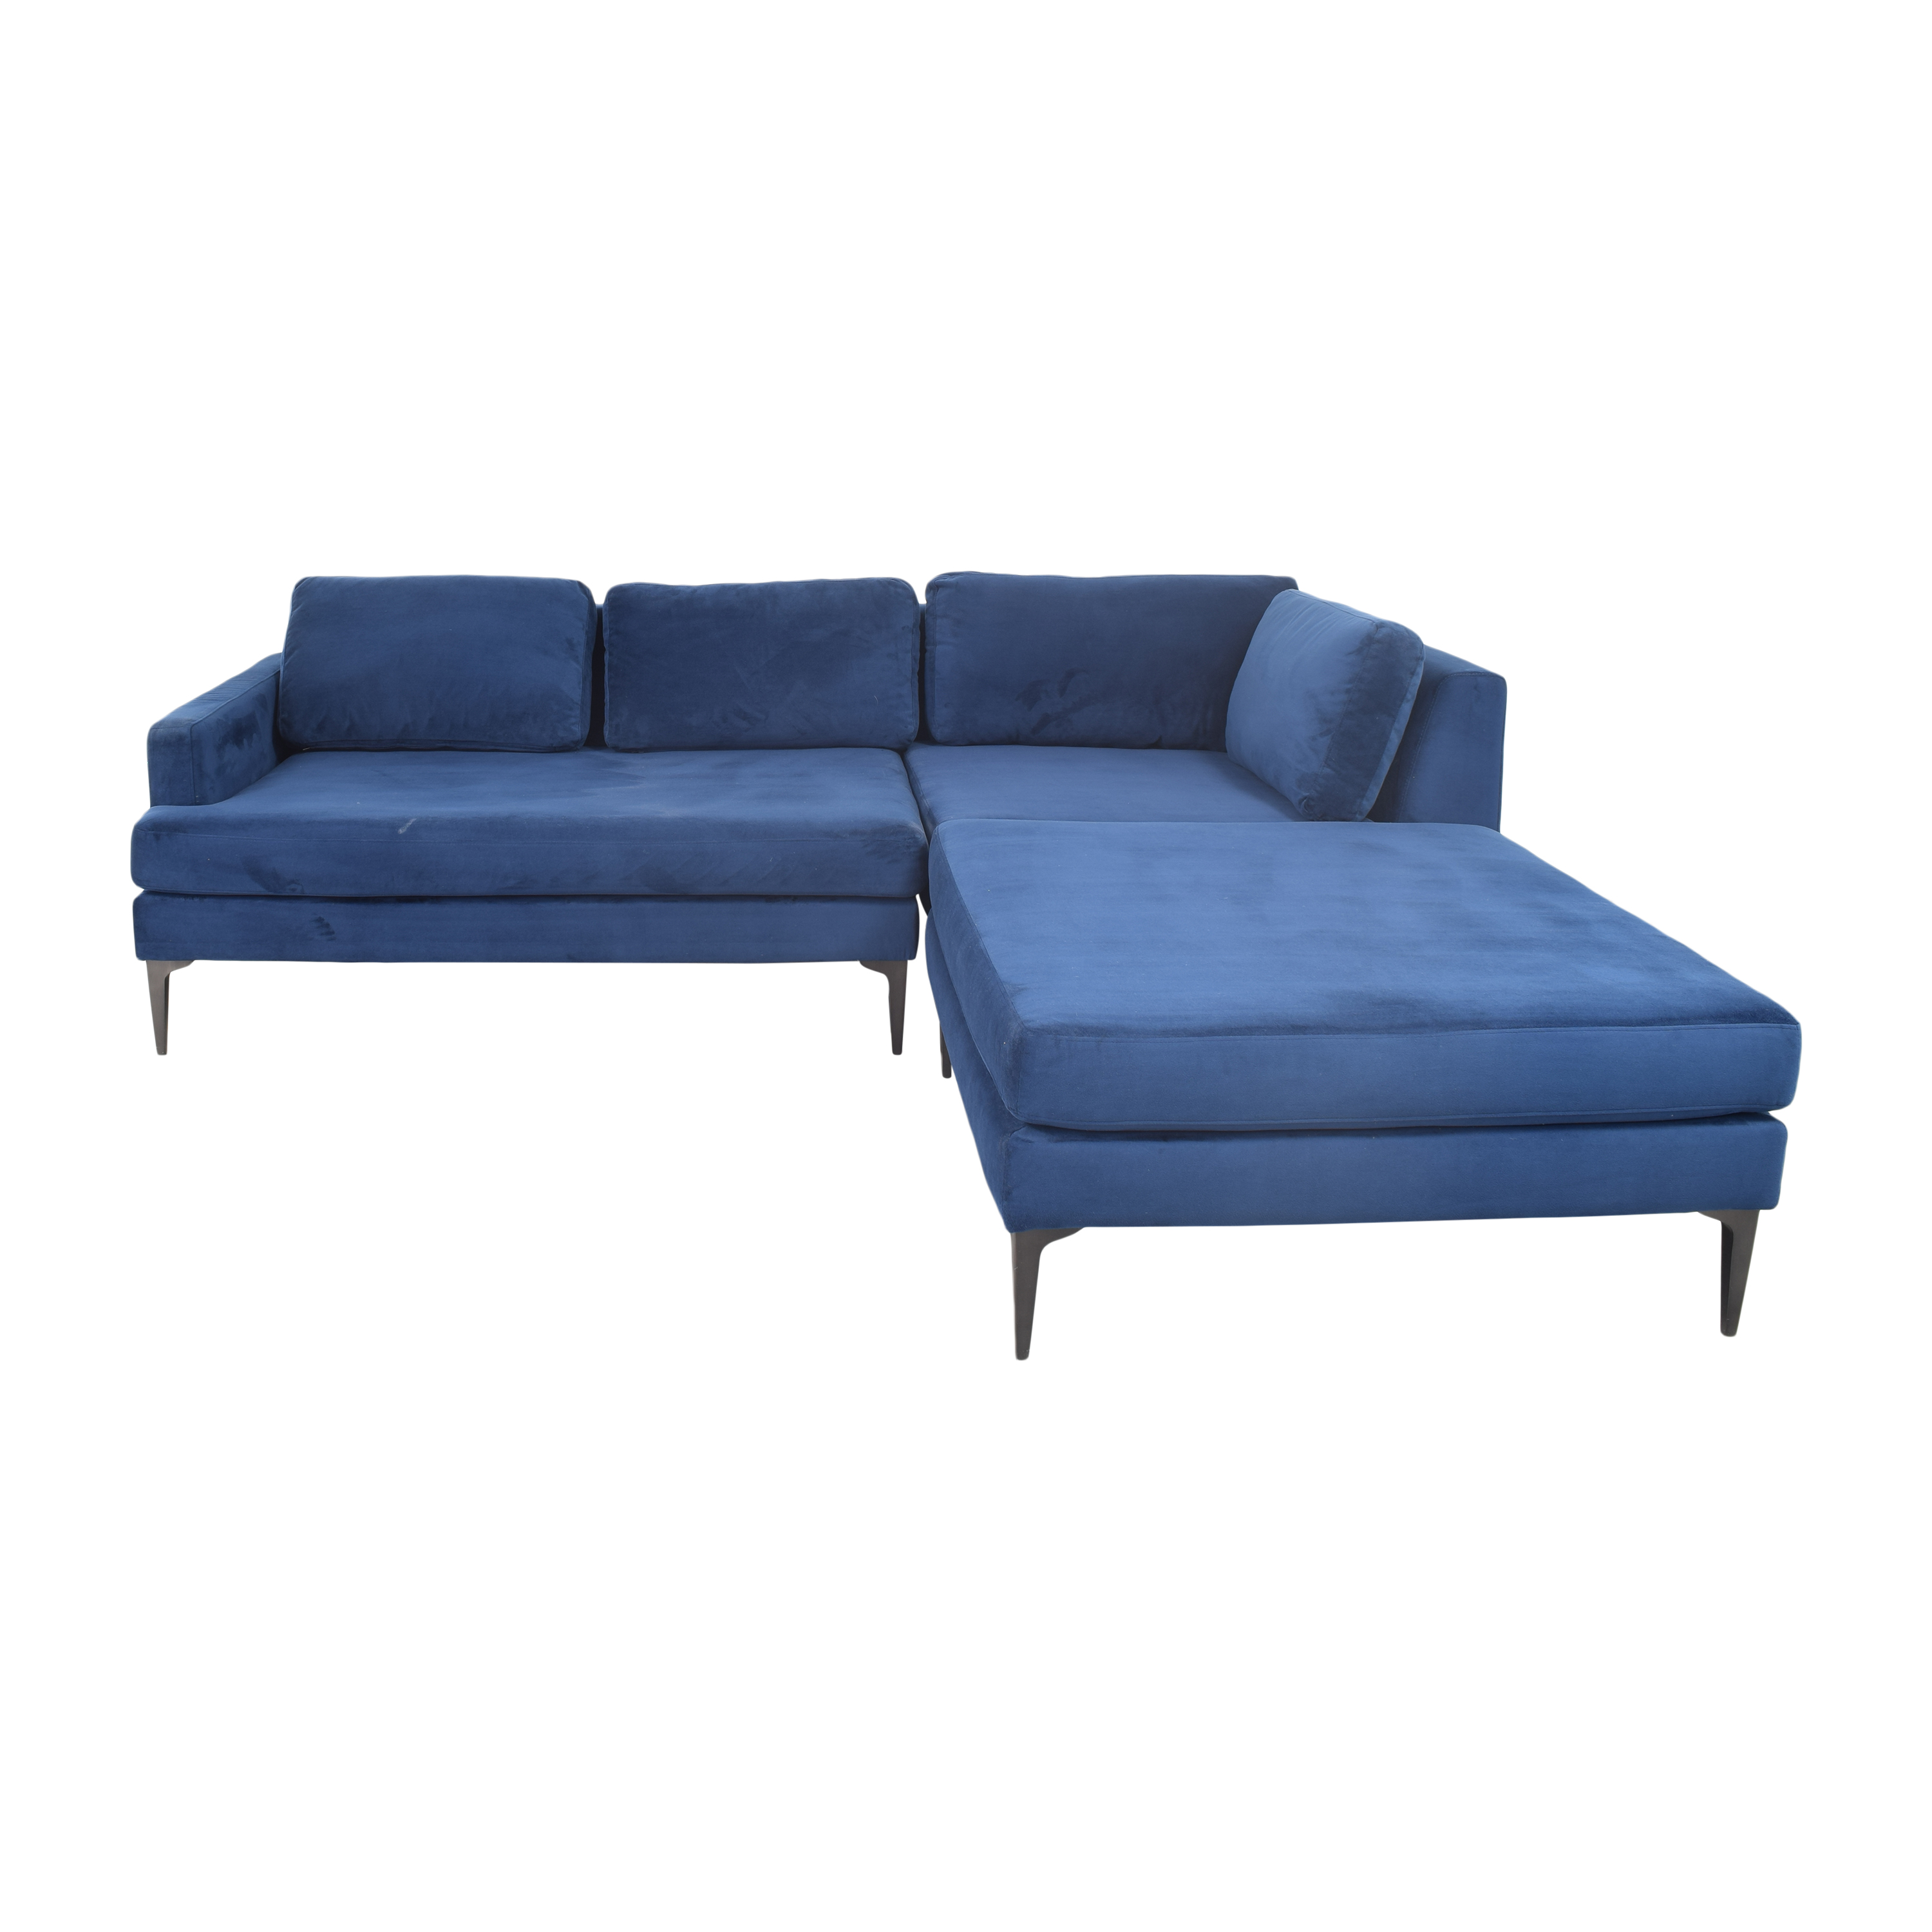 West Elm West Elm Andes 3-Piece Chaise Sectional Sofas